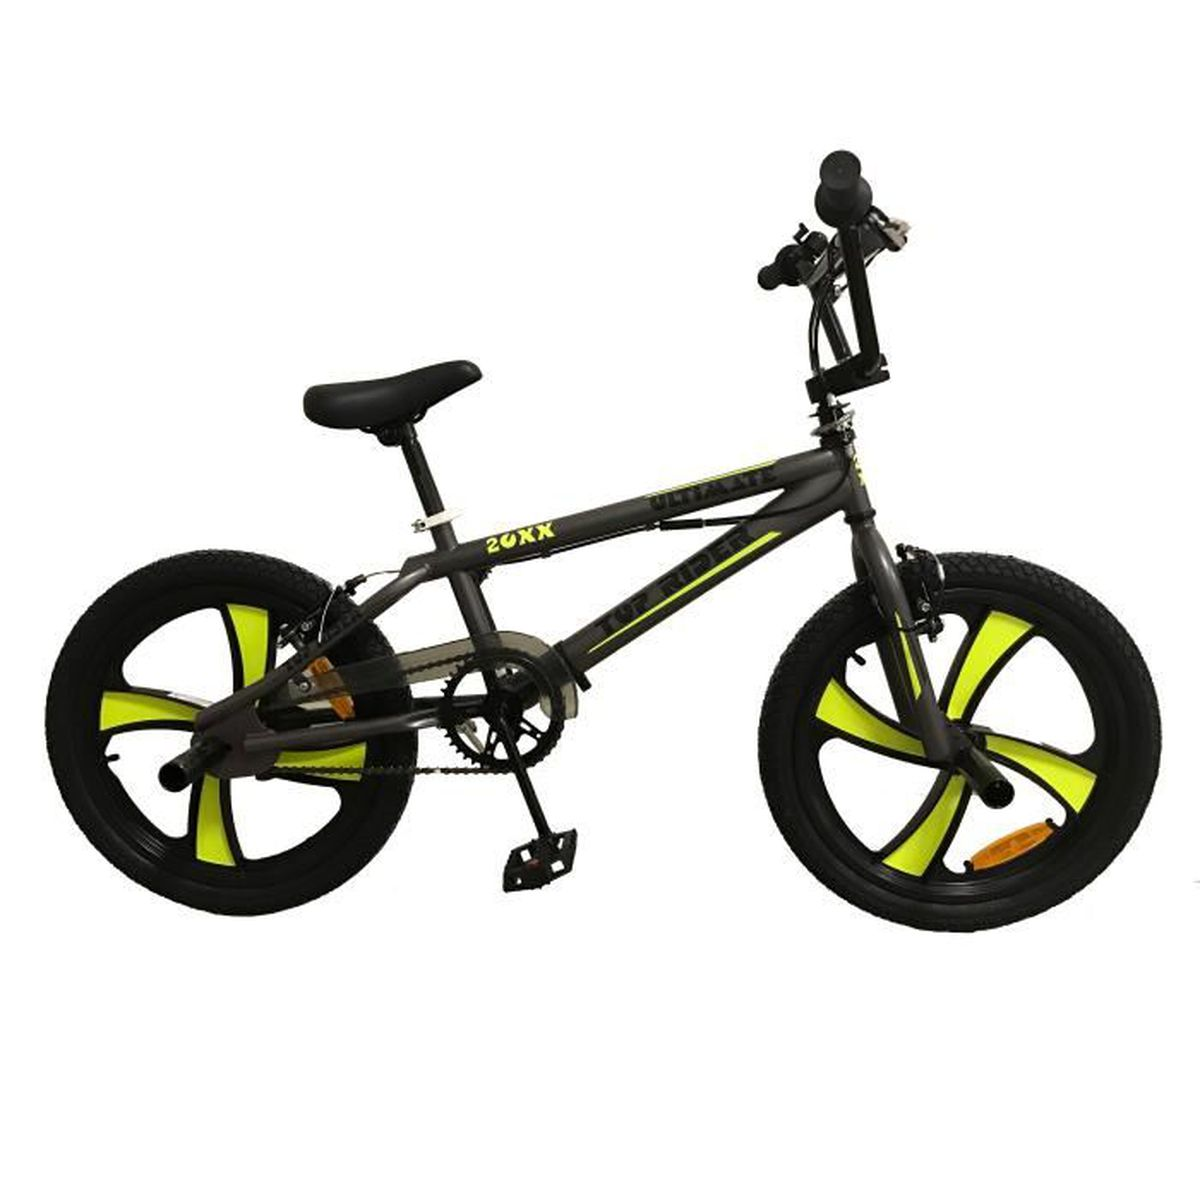 free style 20 39 39 bmx top rider ultimate avec rotor. Black Bedroom Furniture Sets. Home Design Ideas